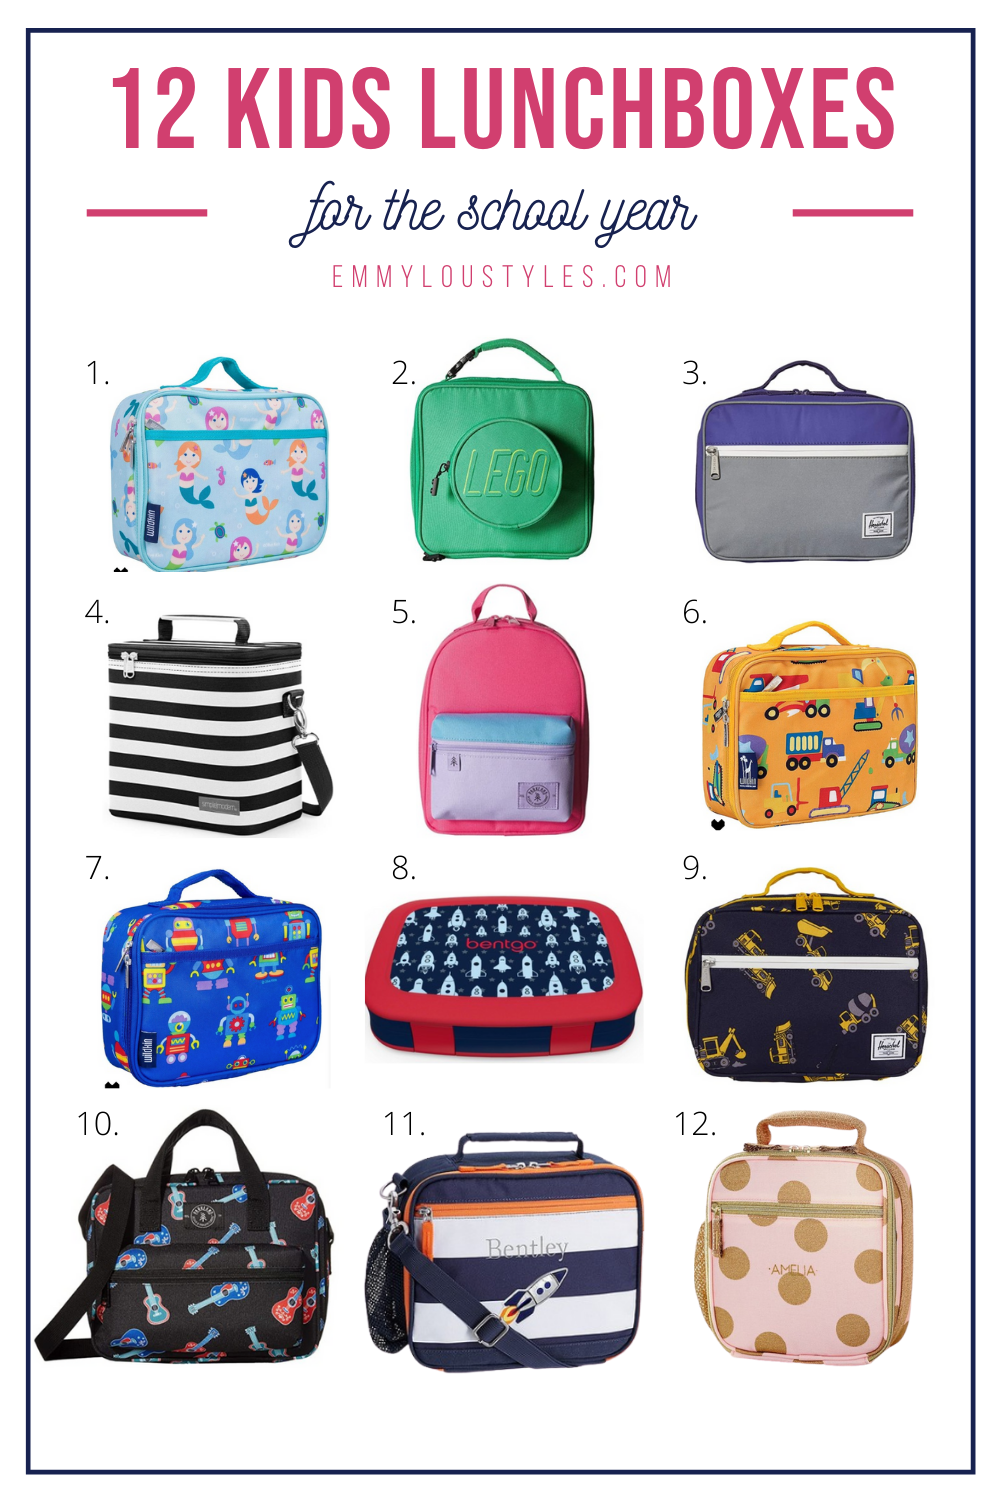 kids lunchboxes for the school year